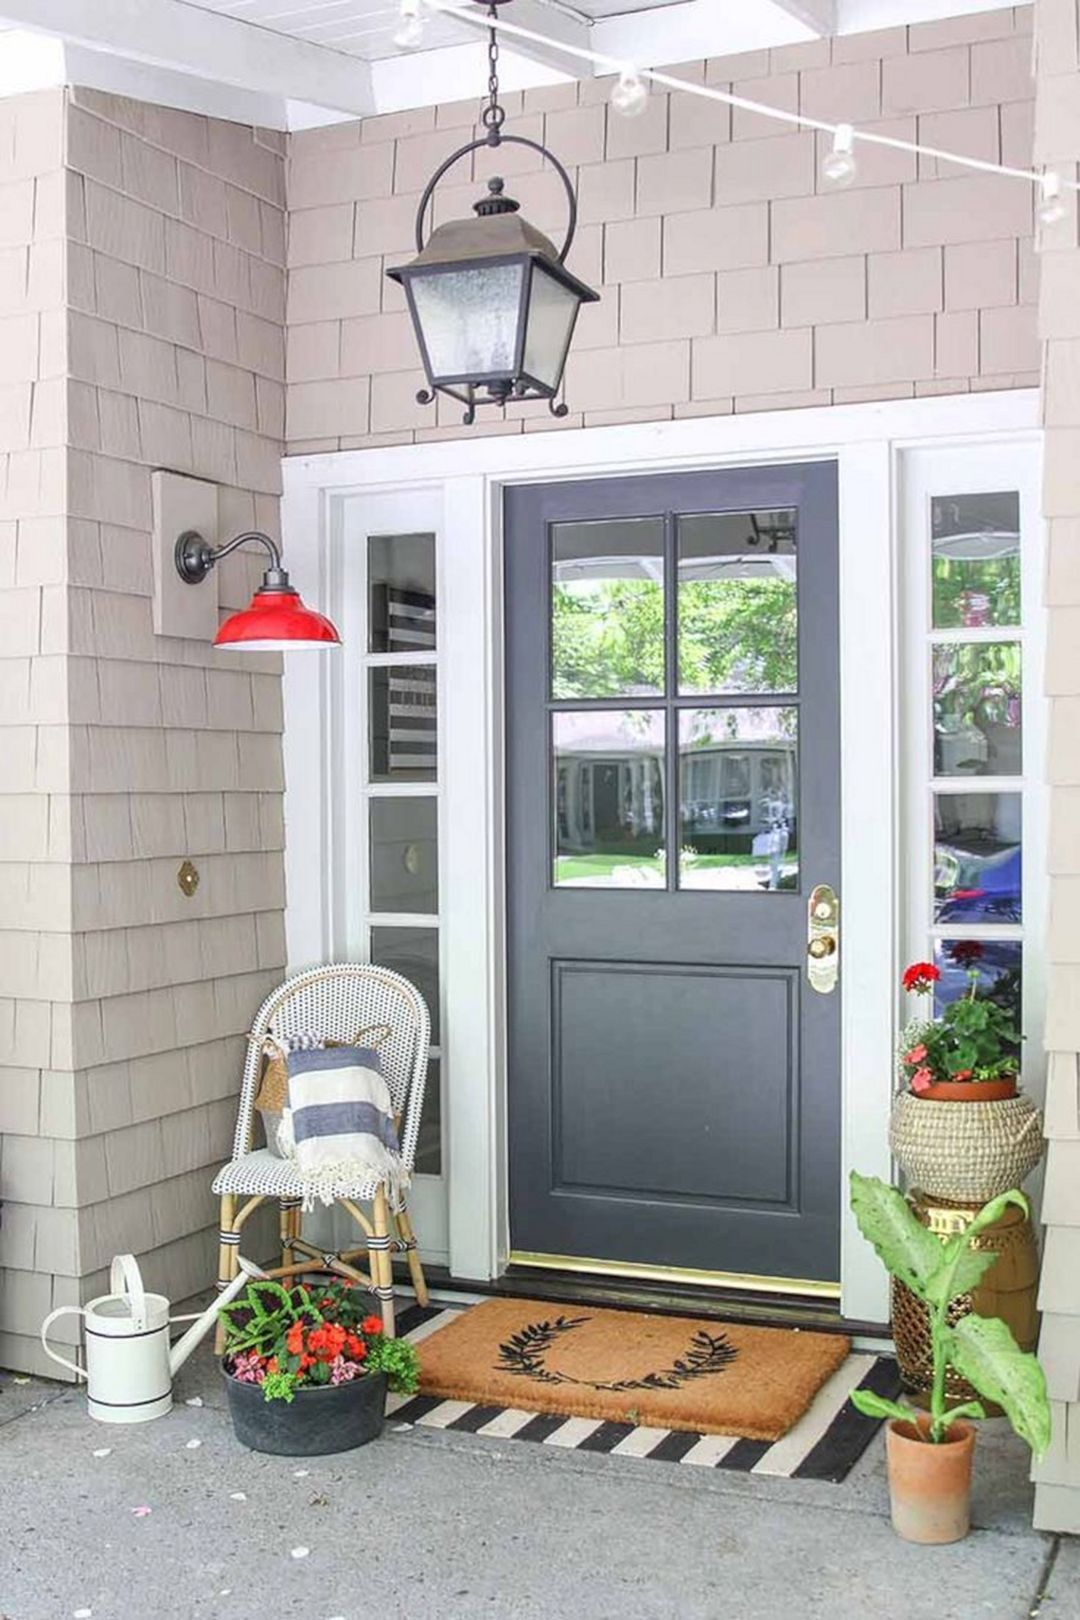 Front Porch Ideas To Add More Aesthetic Appeal To Your Home: 20 Most Popular Summer Front Porch Decoration Ideas Trend 2020